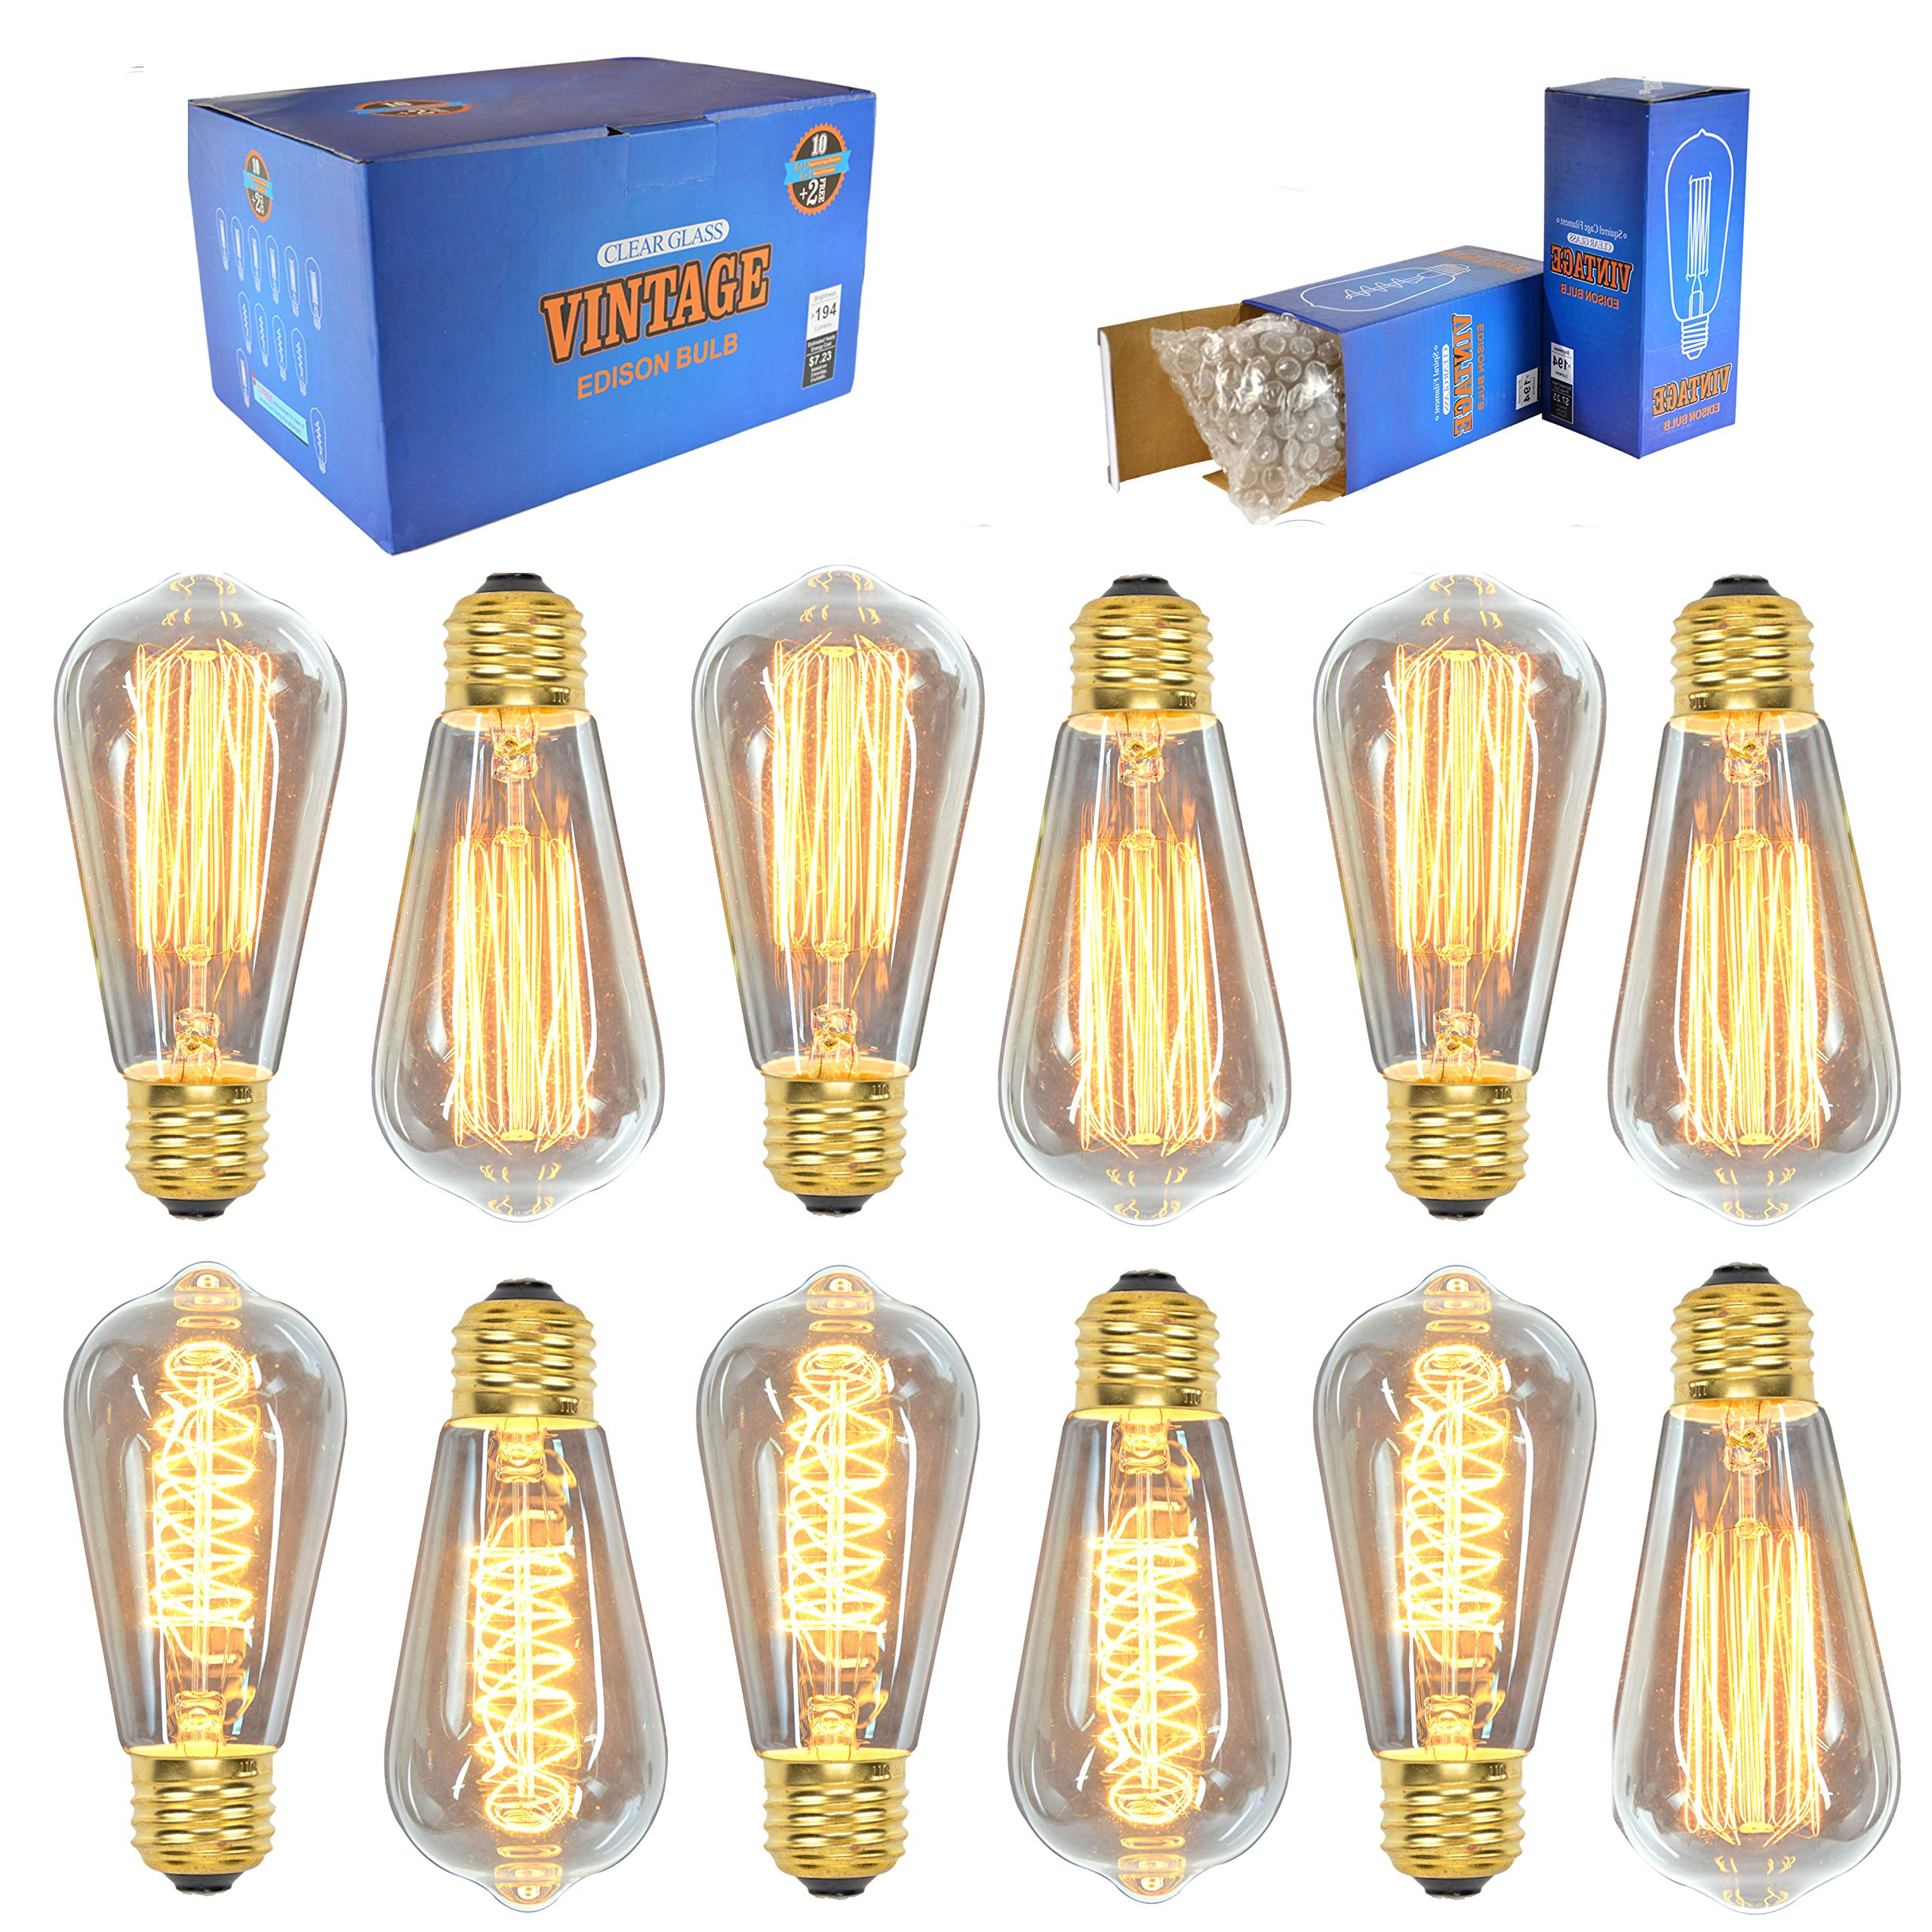 Vintage Edison Bulbs (12 Pack, 7 Squirrel Cage Filament Bulbs , 5 Spiral Filament Bulbs), 60W, ST64, E26, Squirrel Cage, Dimmable,Clear Glass, Industrial Vintage Bulbs